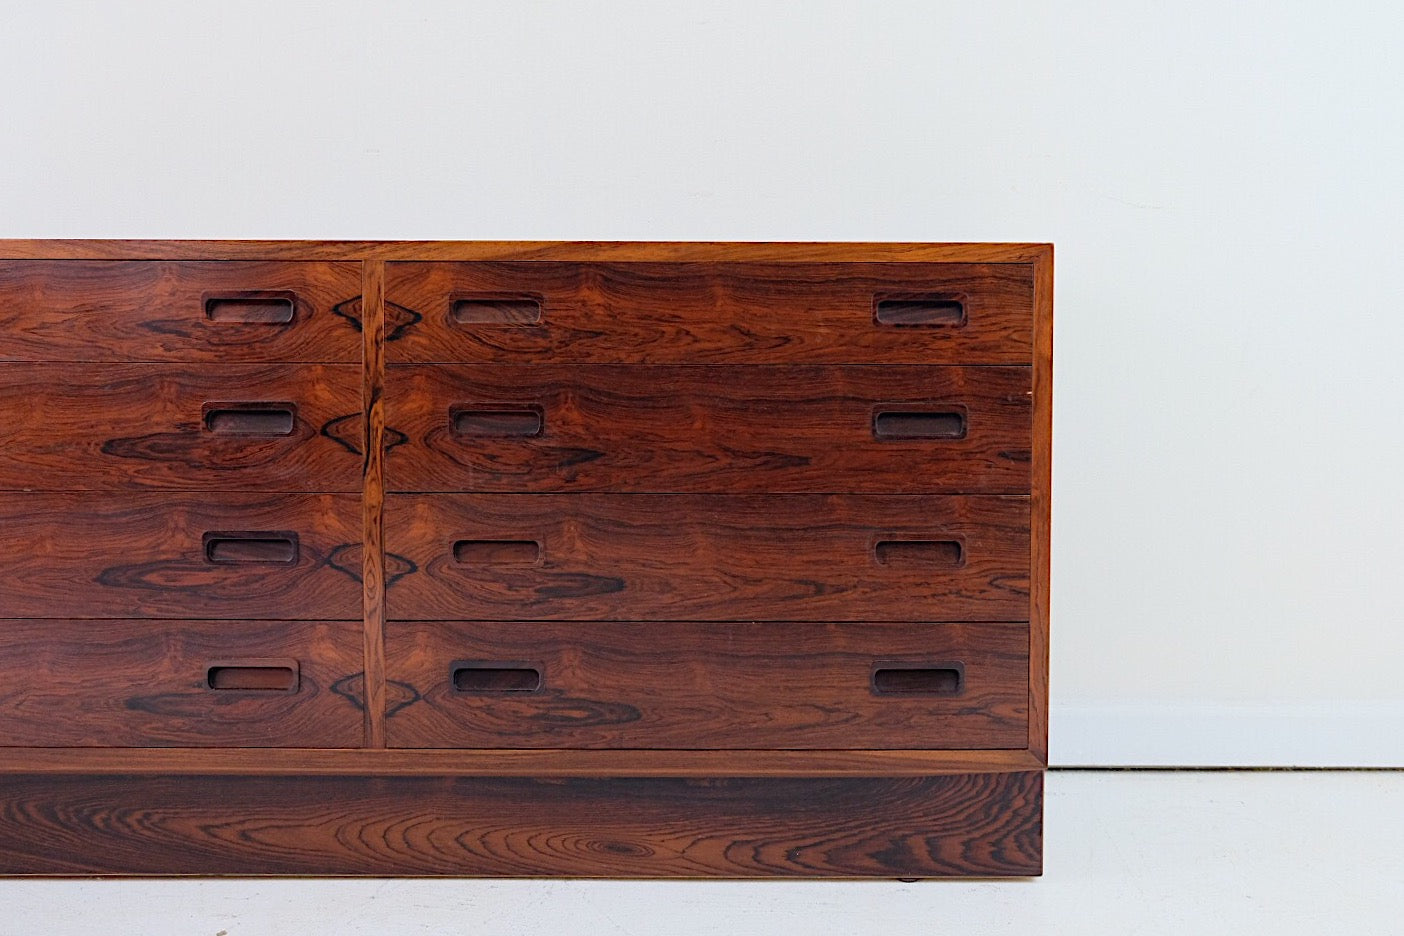 Hundevad, Poul Rosewood Mid Century Modern Small Credenza Eight Drawers